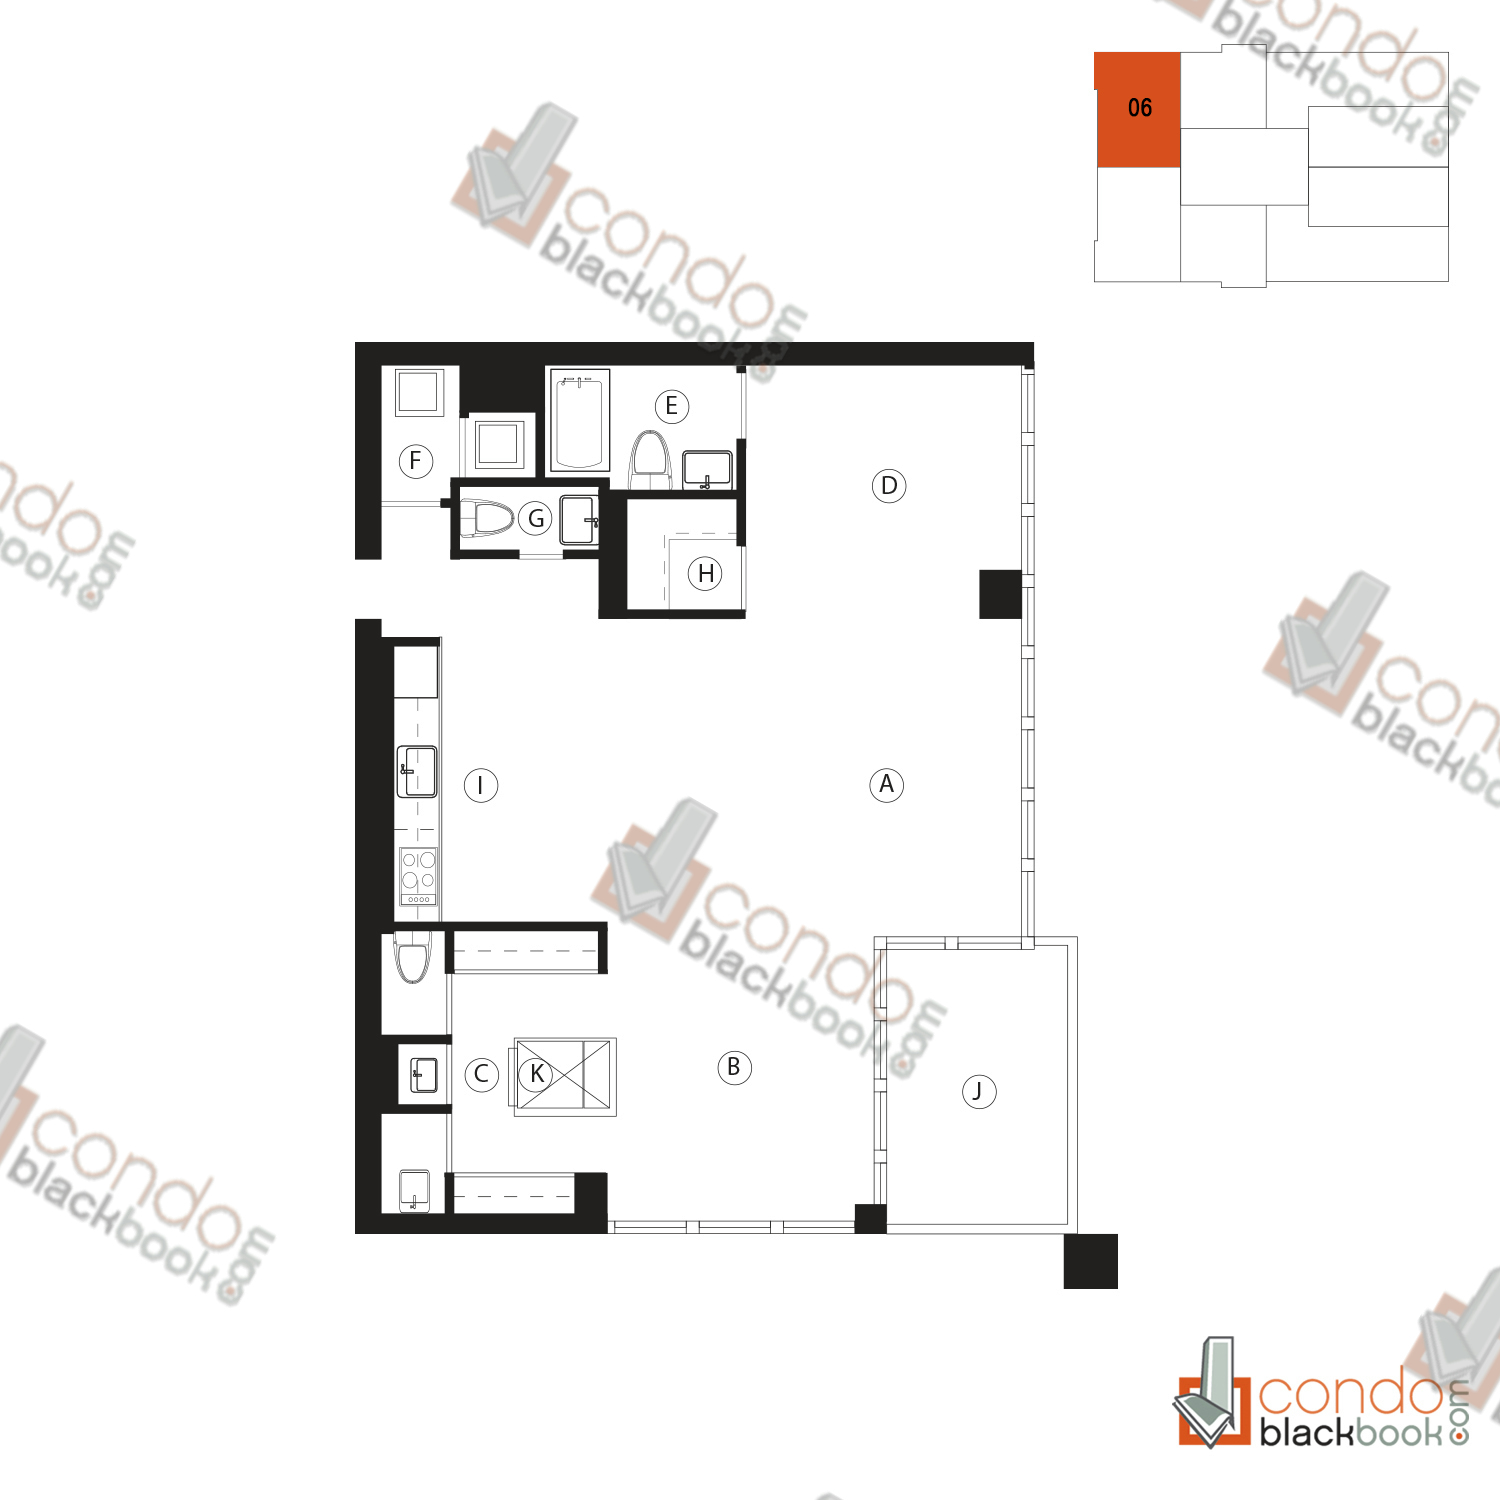 Floor plan for Ten Museum Park Downtown Miami Miami, model 06, line 06, 2/2.5 bedrooms, 1,123 sq ft